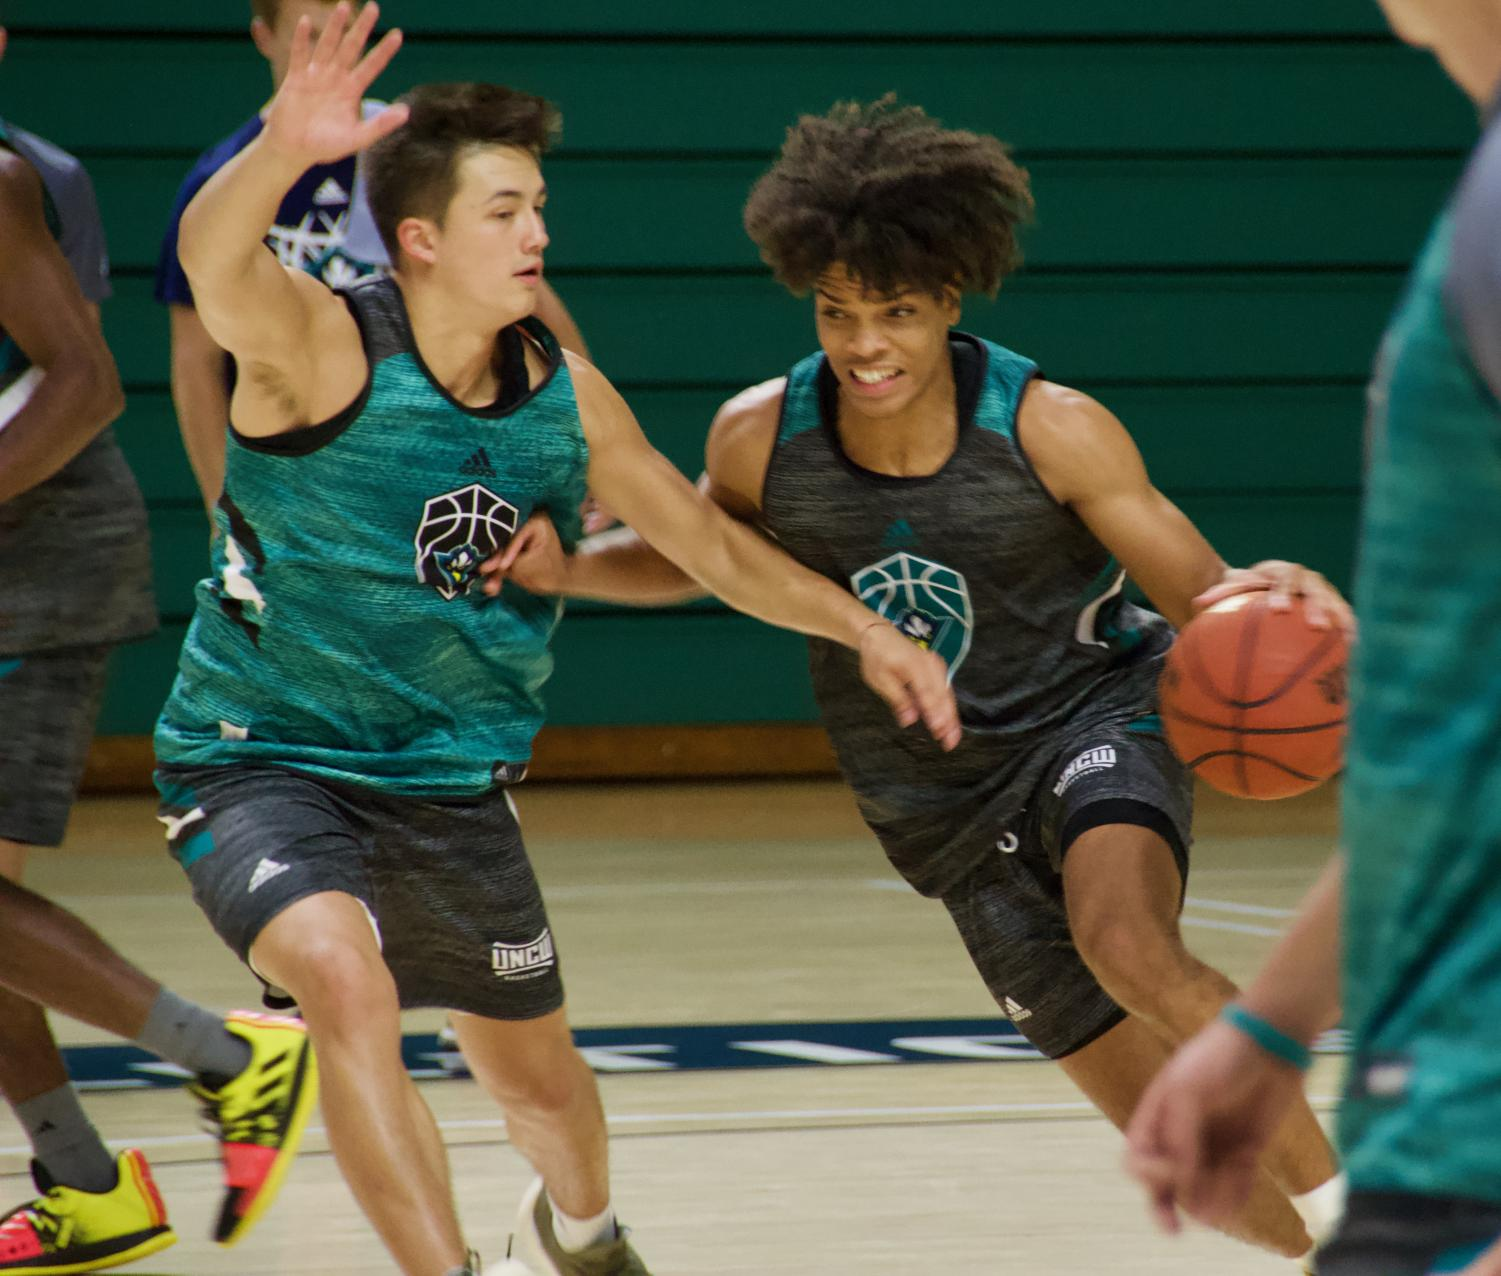 Kai Toews guards Shykeim Phillips during UNCW's first official practice of the 2019-20 season on Sep. 26, 2019.